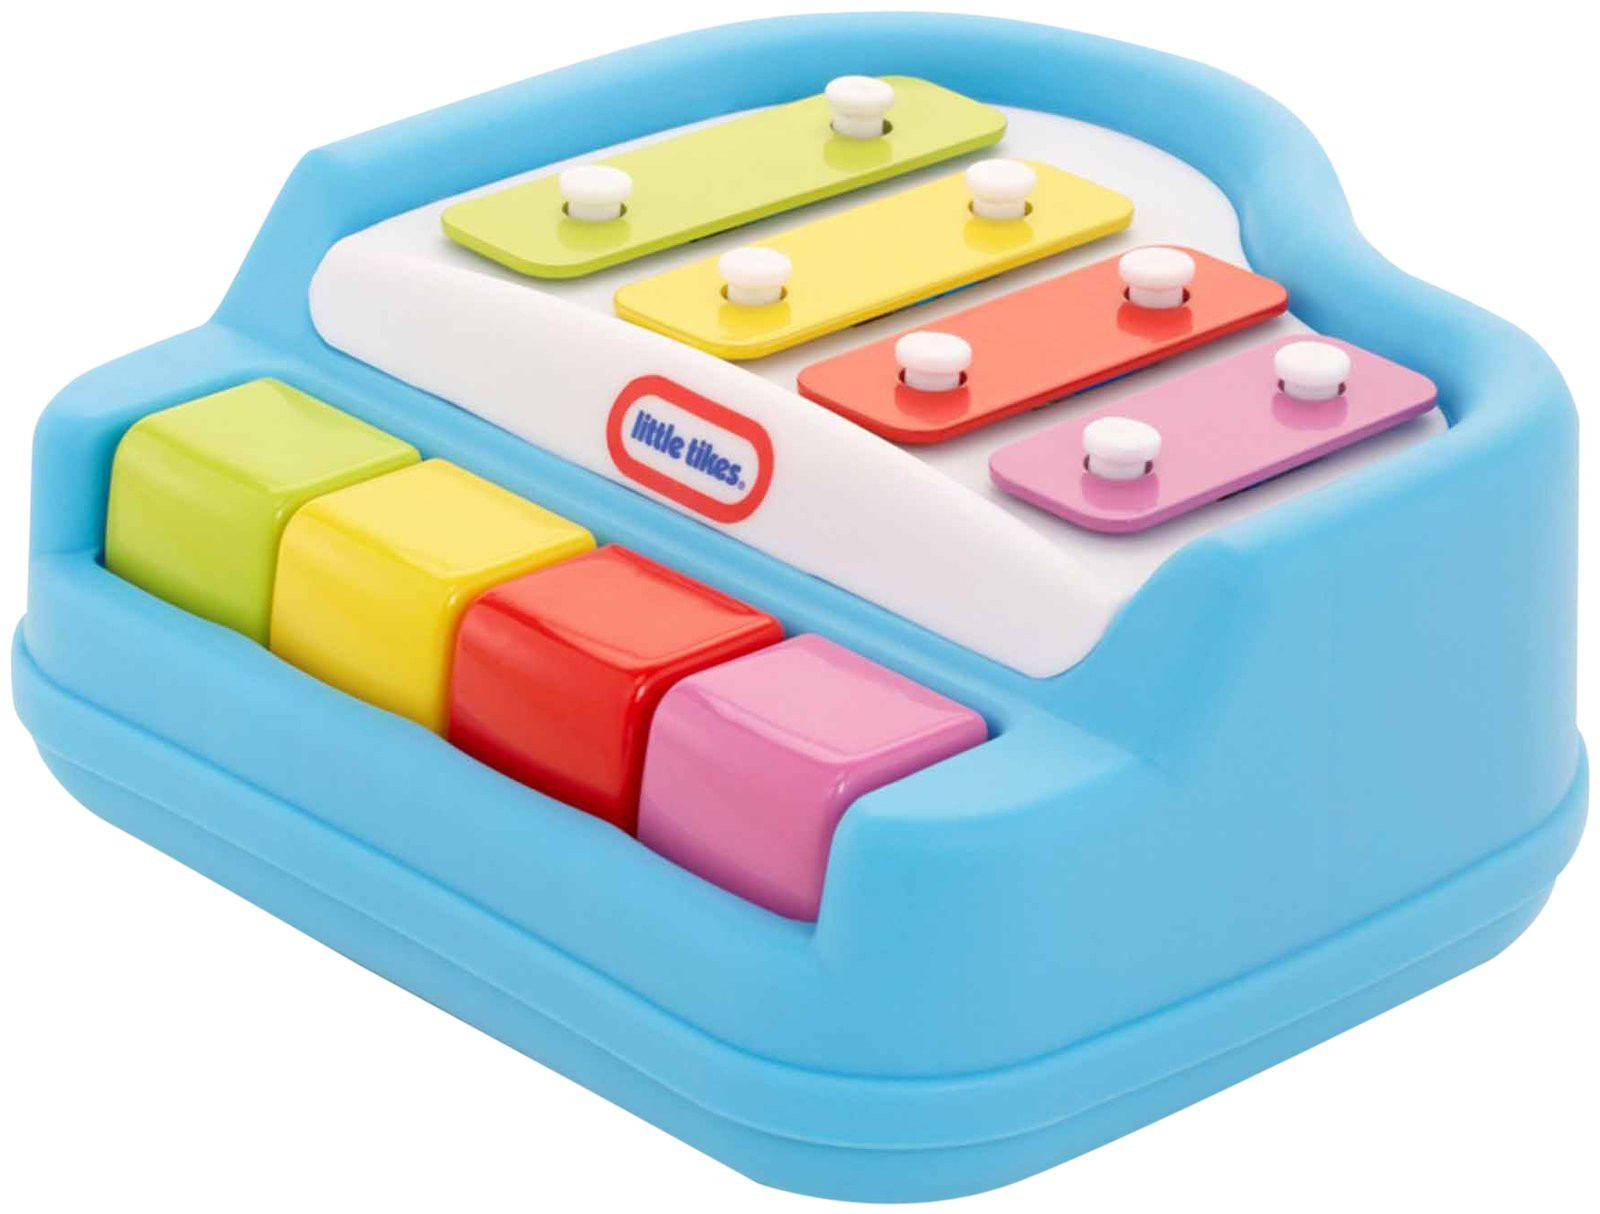 Little Tikes Baby Tap a Tune Piano Blue. This toy piano will delight and stimulate your baby! It is just the right size for little hands, and the keys are easy to press. Babies will learn cause and effect, and begin to develop a sense of rhythm and timing